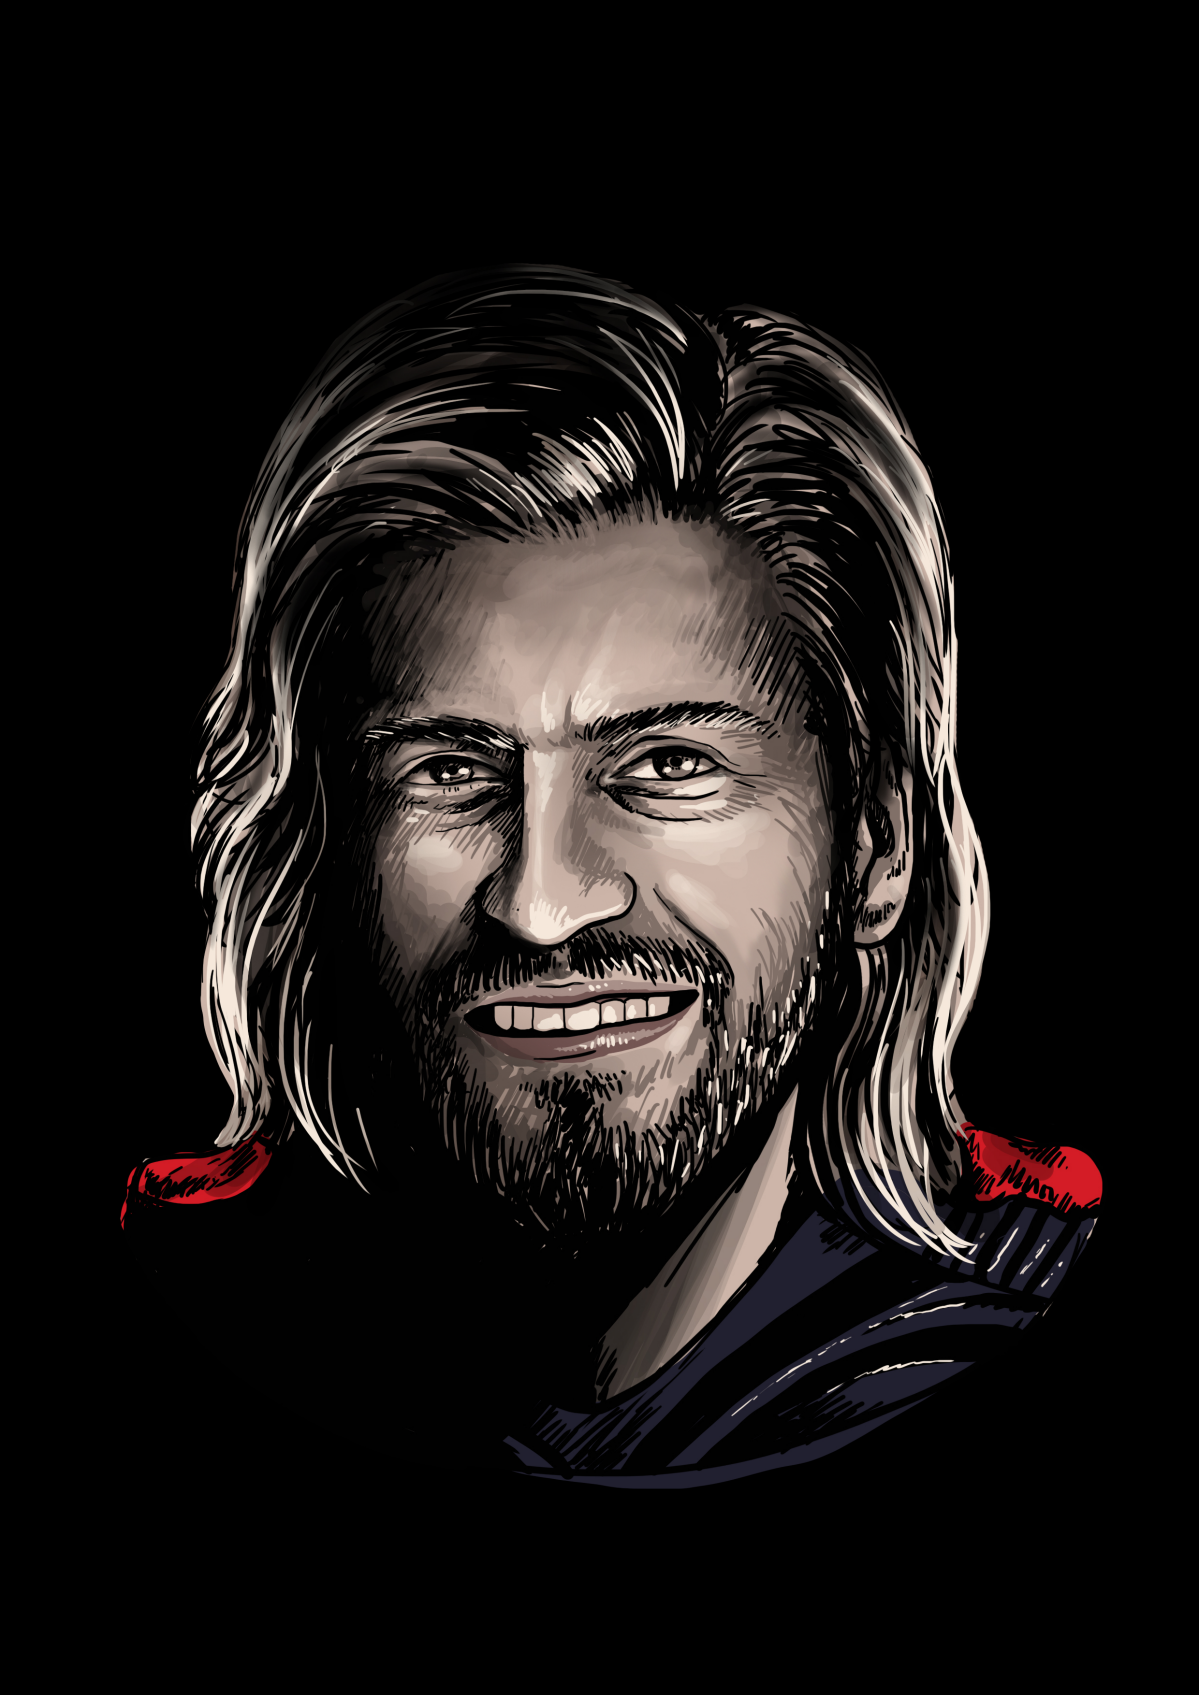 Thor Look-a-like Illustration from a friends face